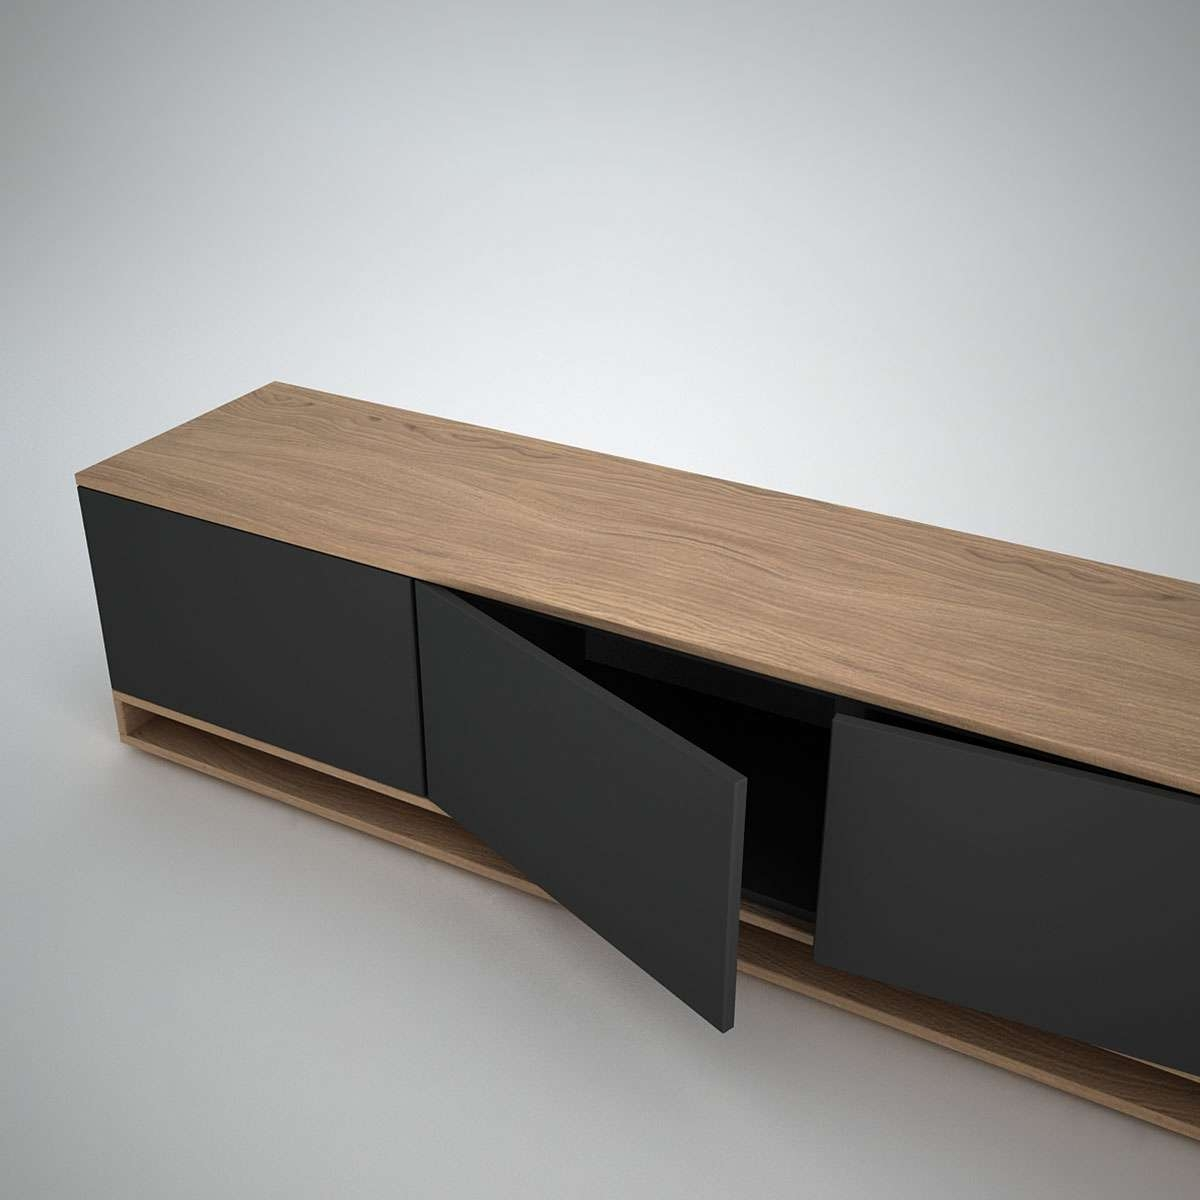 Harlem Low Sideboard (3) Anthracite – Join Furniture With Regard To Low Sideboards (View 2 of 20)